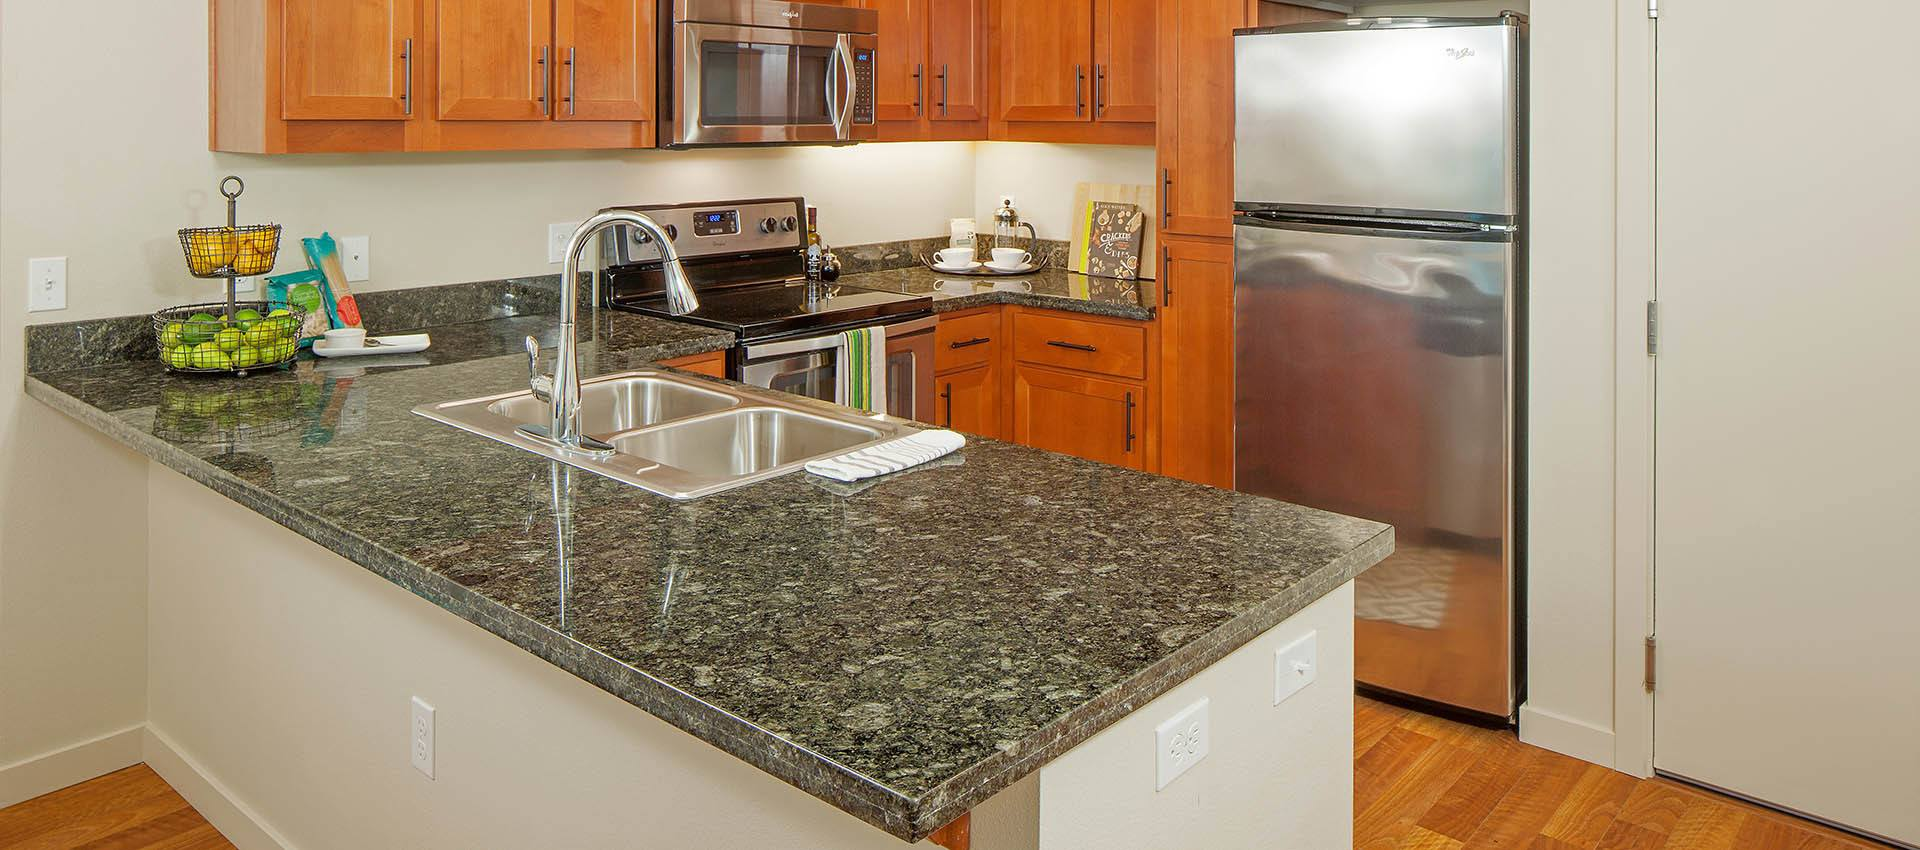 granite counter tops at Eddyline at Bridgeport in Portland, OR